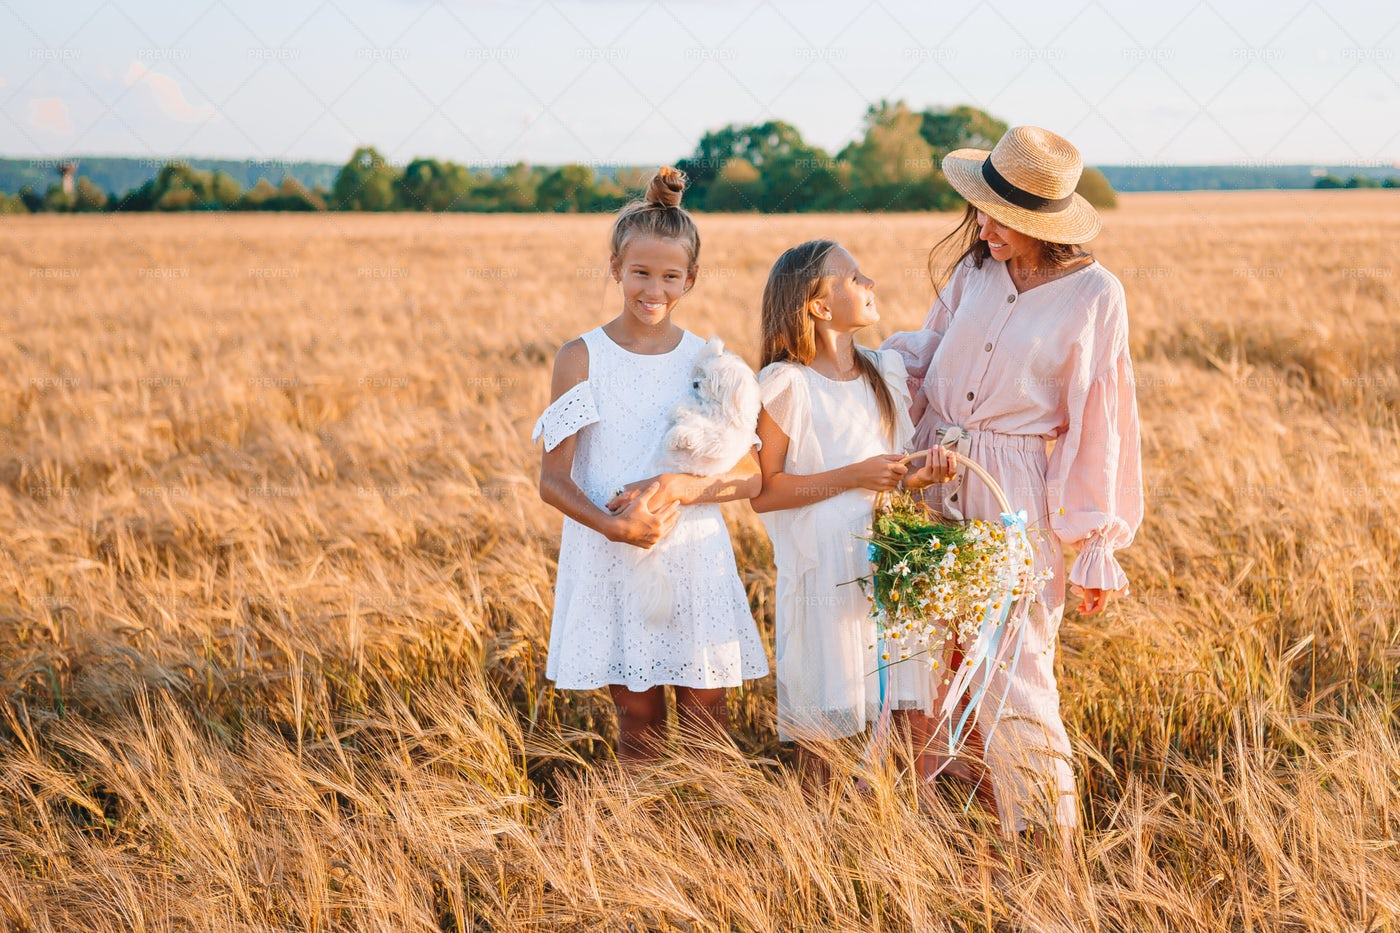 Family In The Wheat Field: Stock Photos